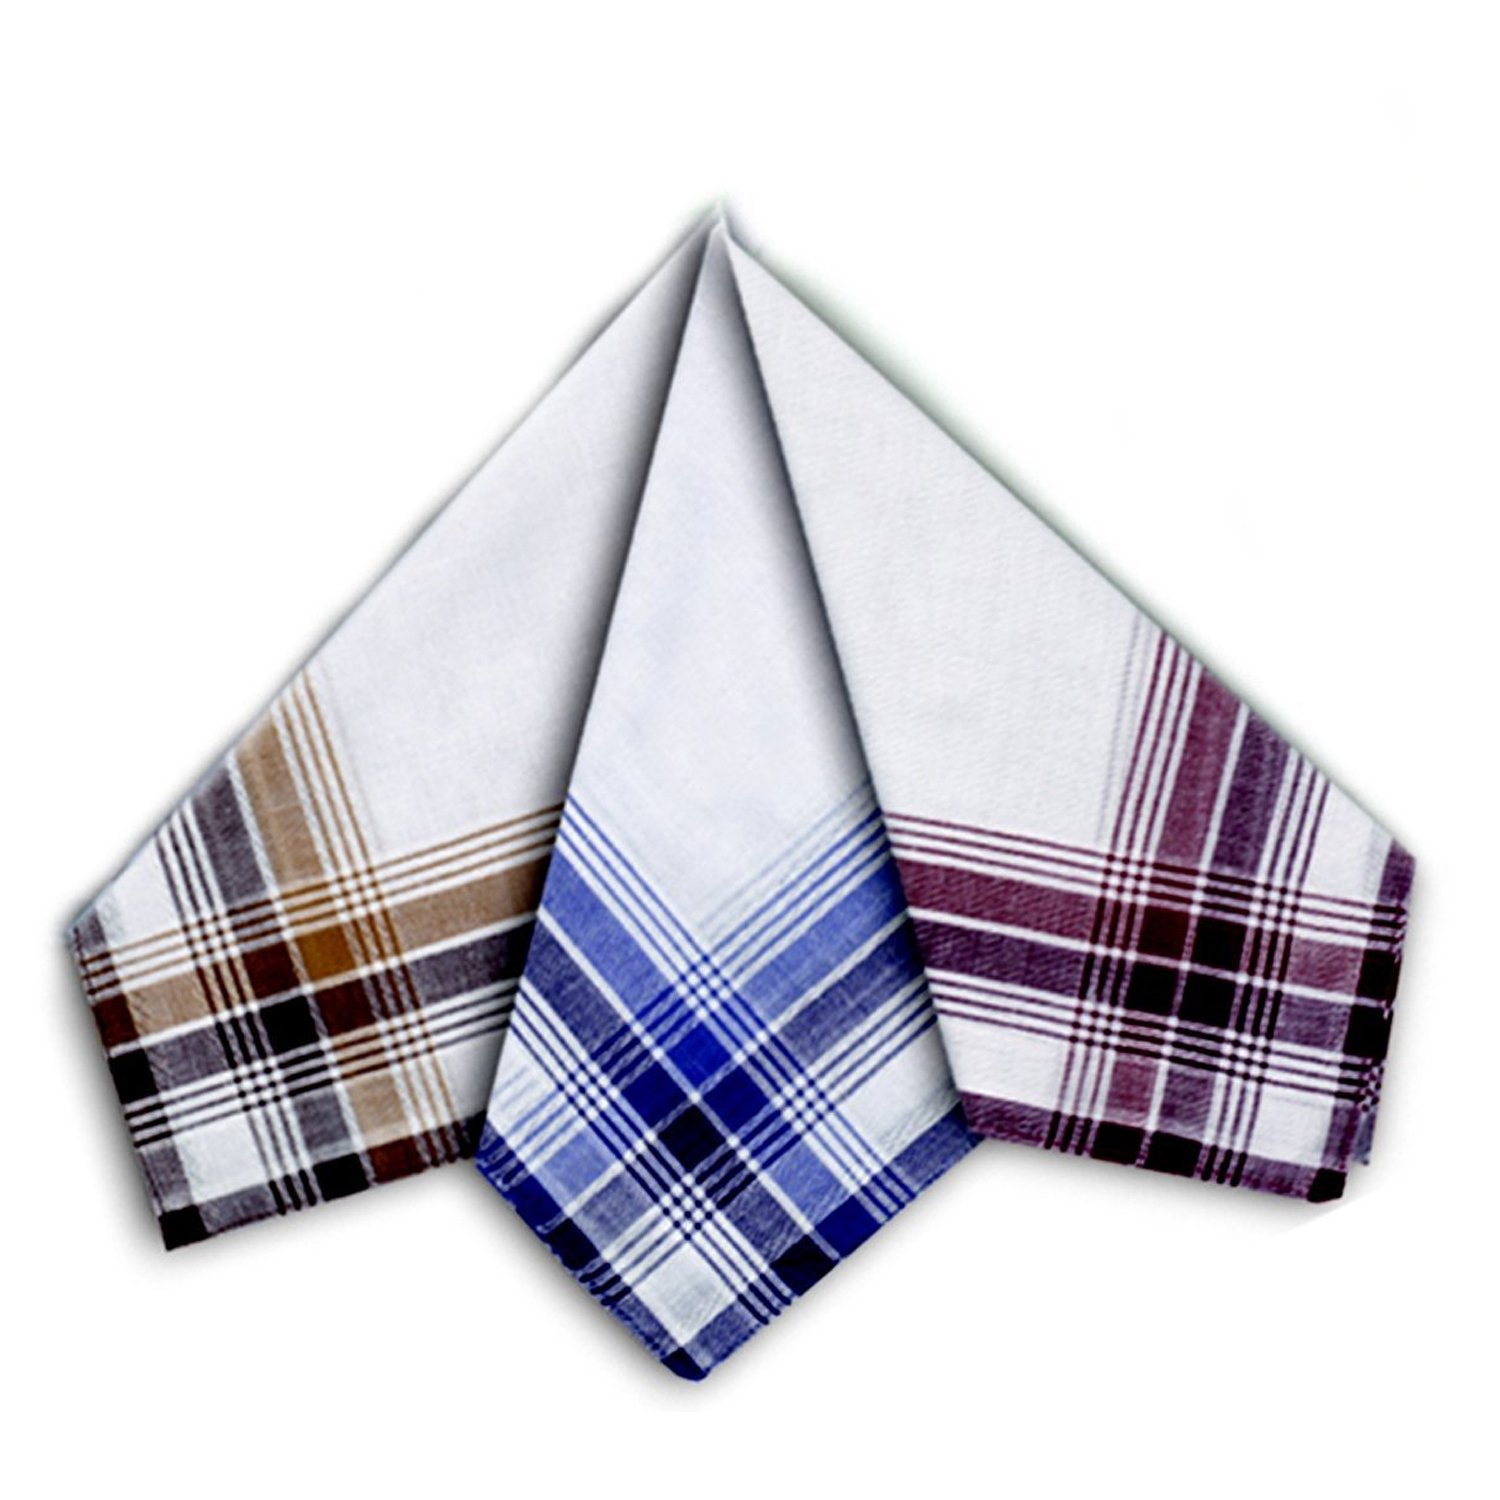 12 Men's Coloured Border 100% Cotton Handkerchiefs Spence